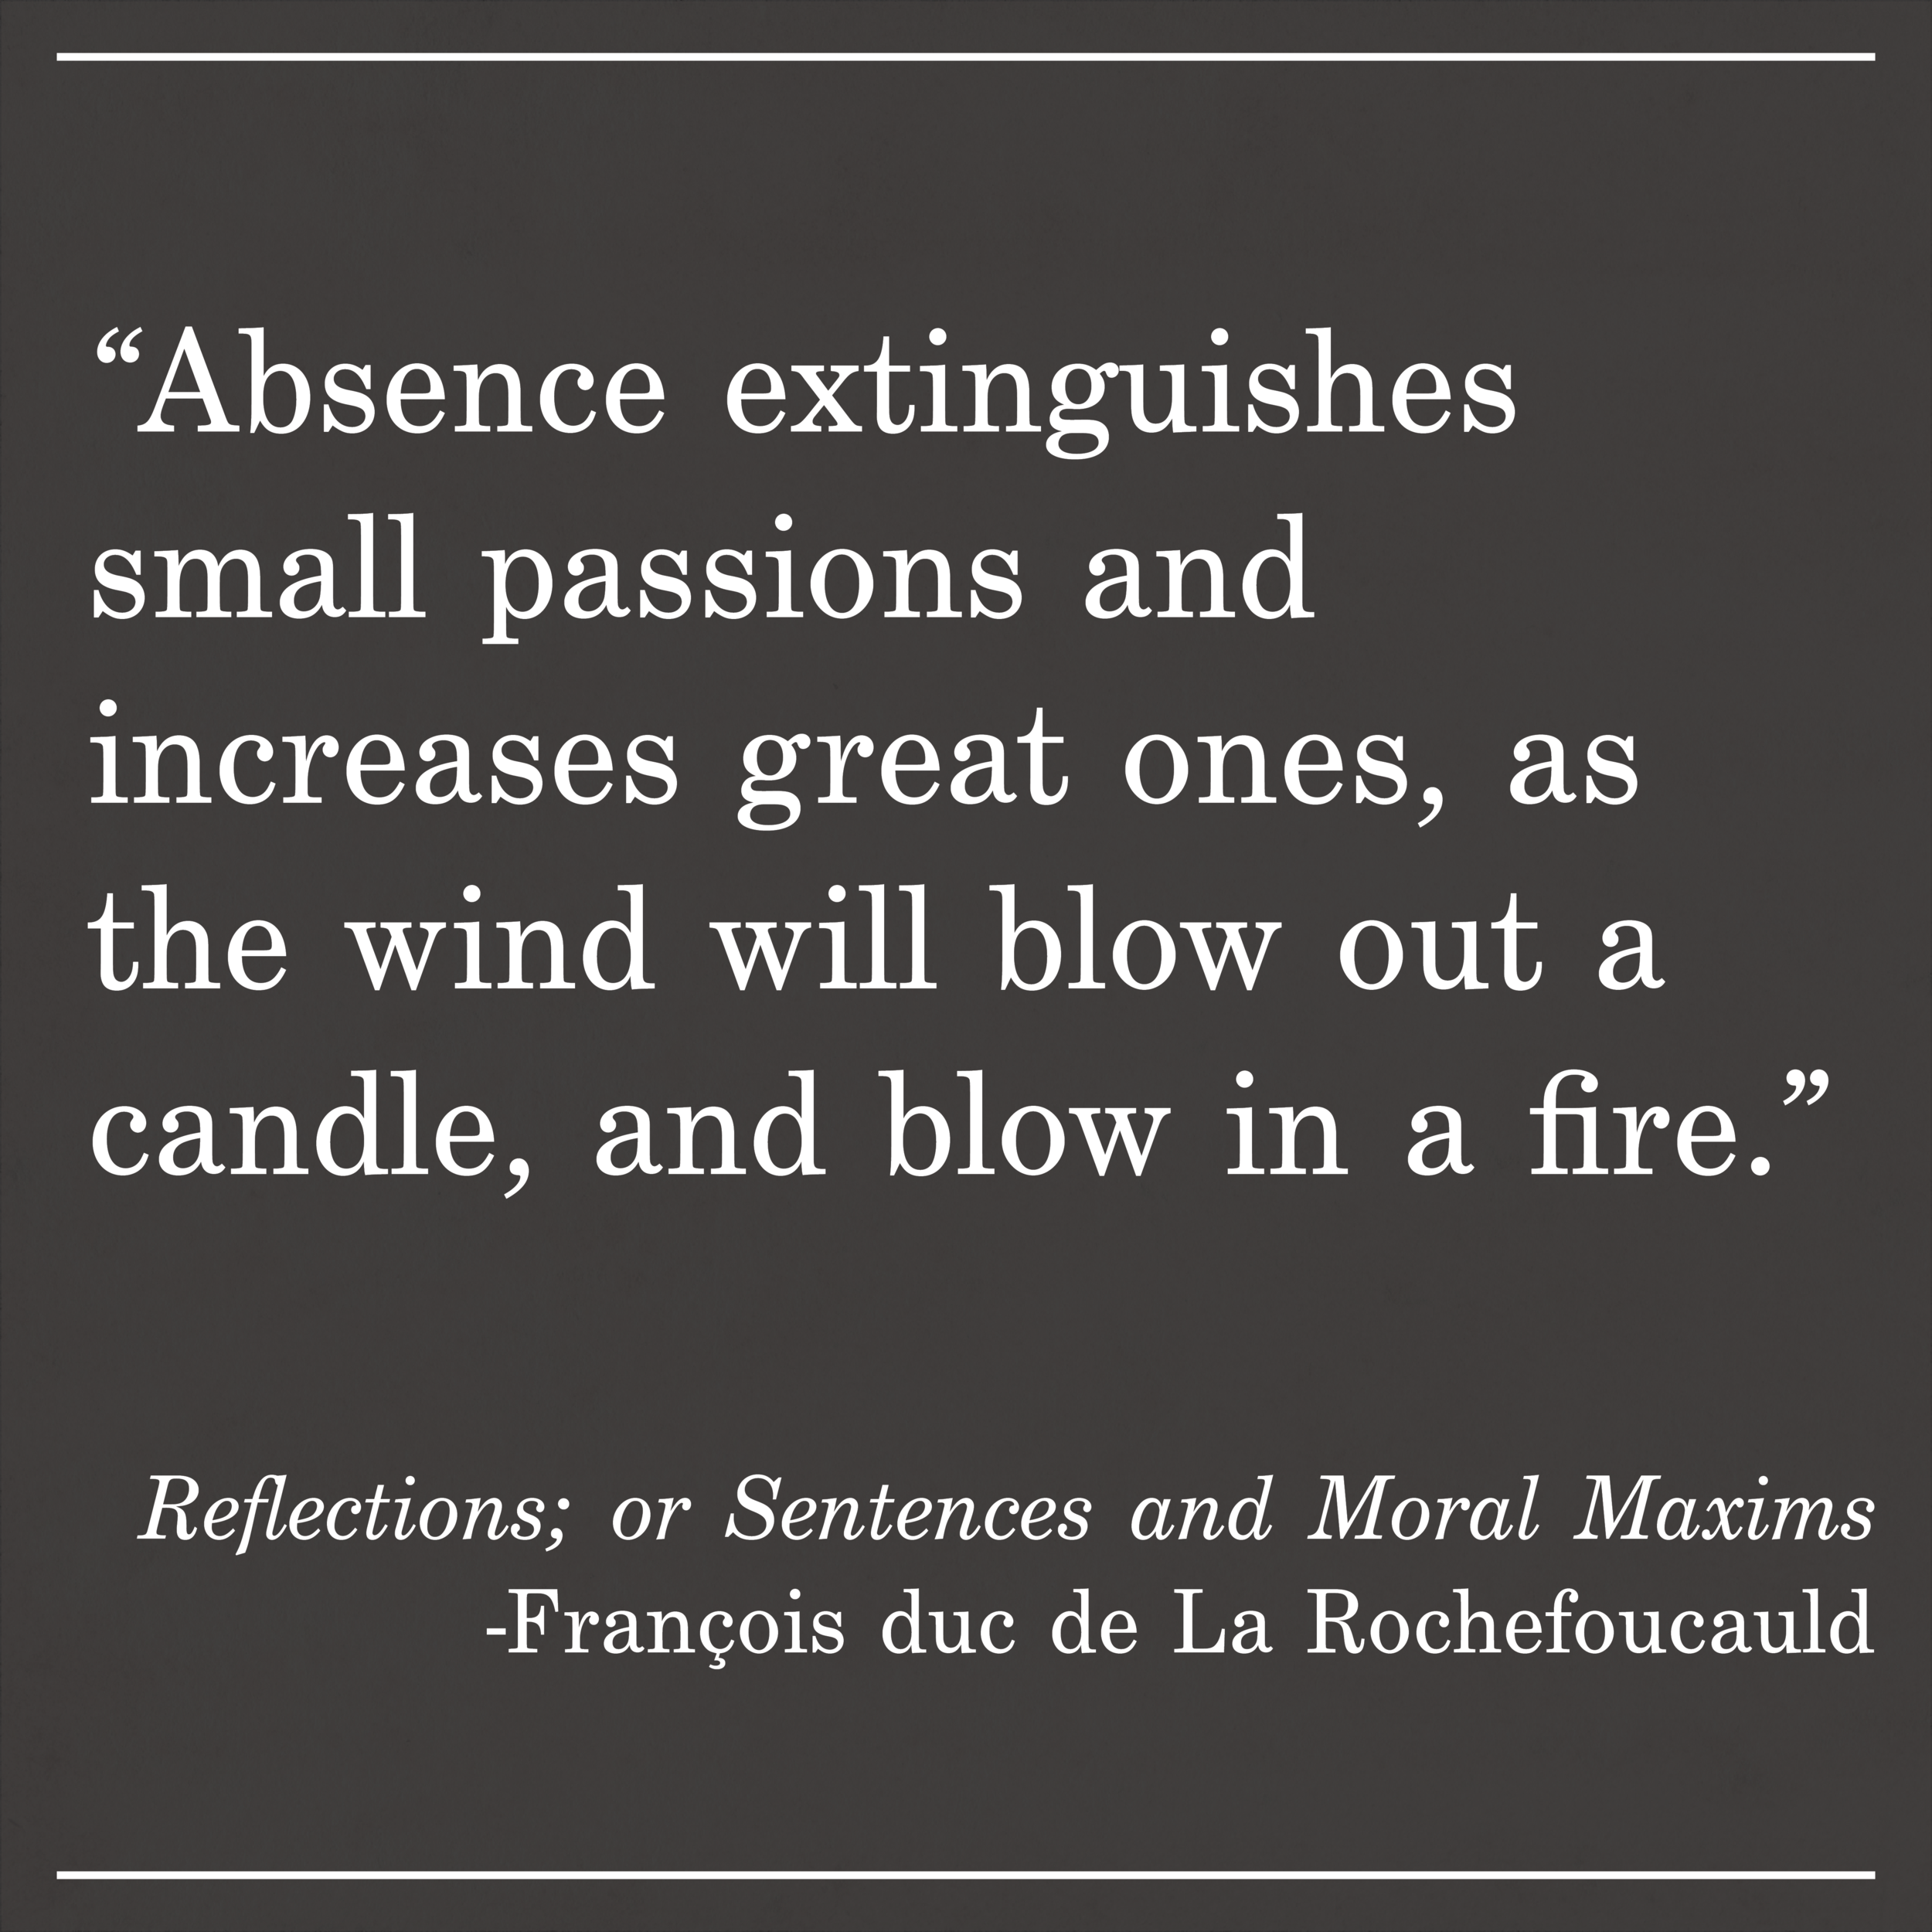 Daily Quote Reflections; or Sentences and Moral Maxims by François duc de La Rochefoucauld